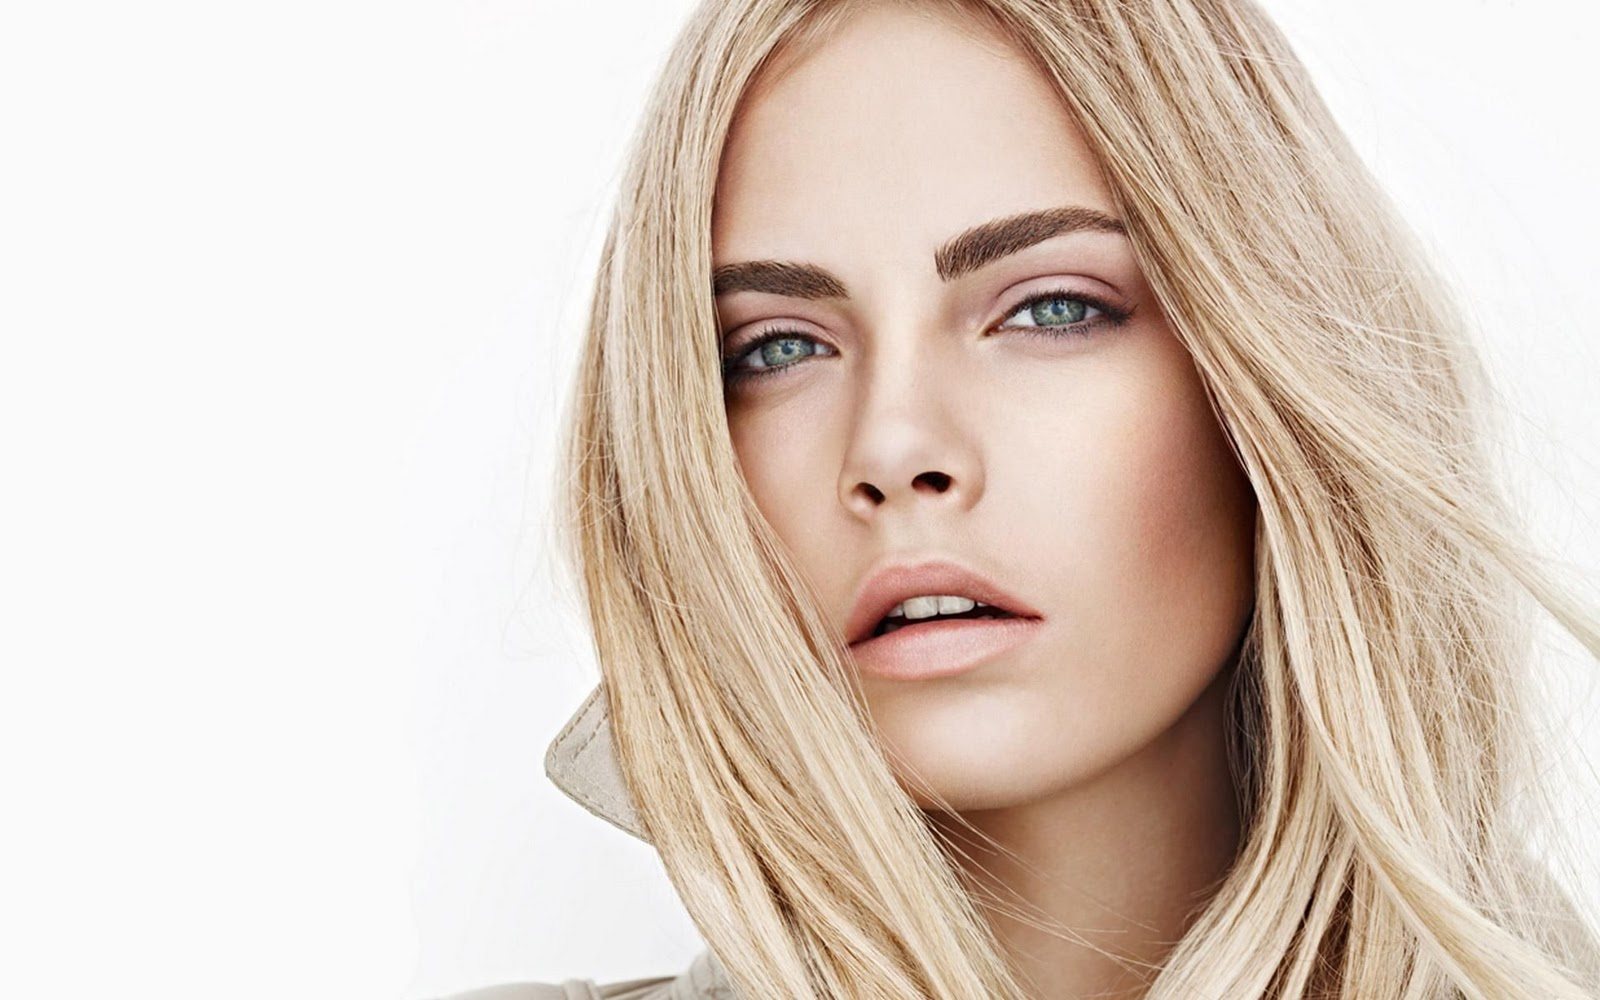 Superhero Movies Are Sexist According To Suicide Squad Actress Cara Delevingne Film News Conversations About Her